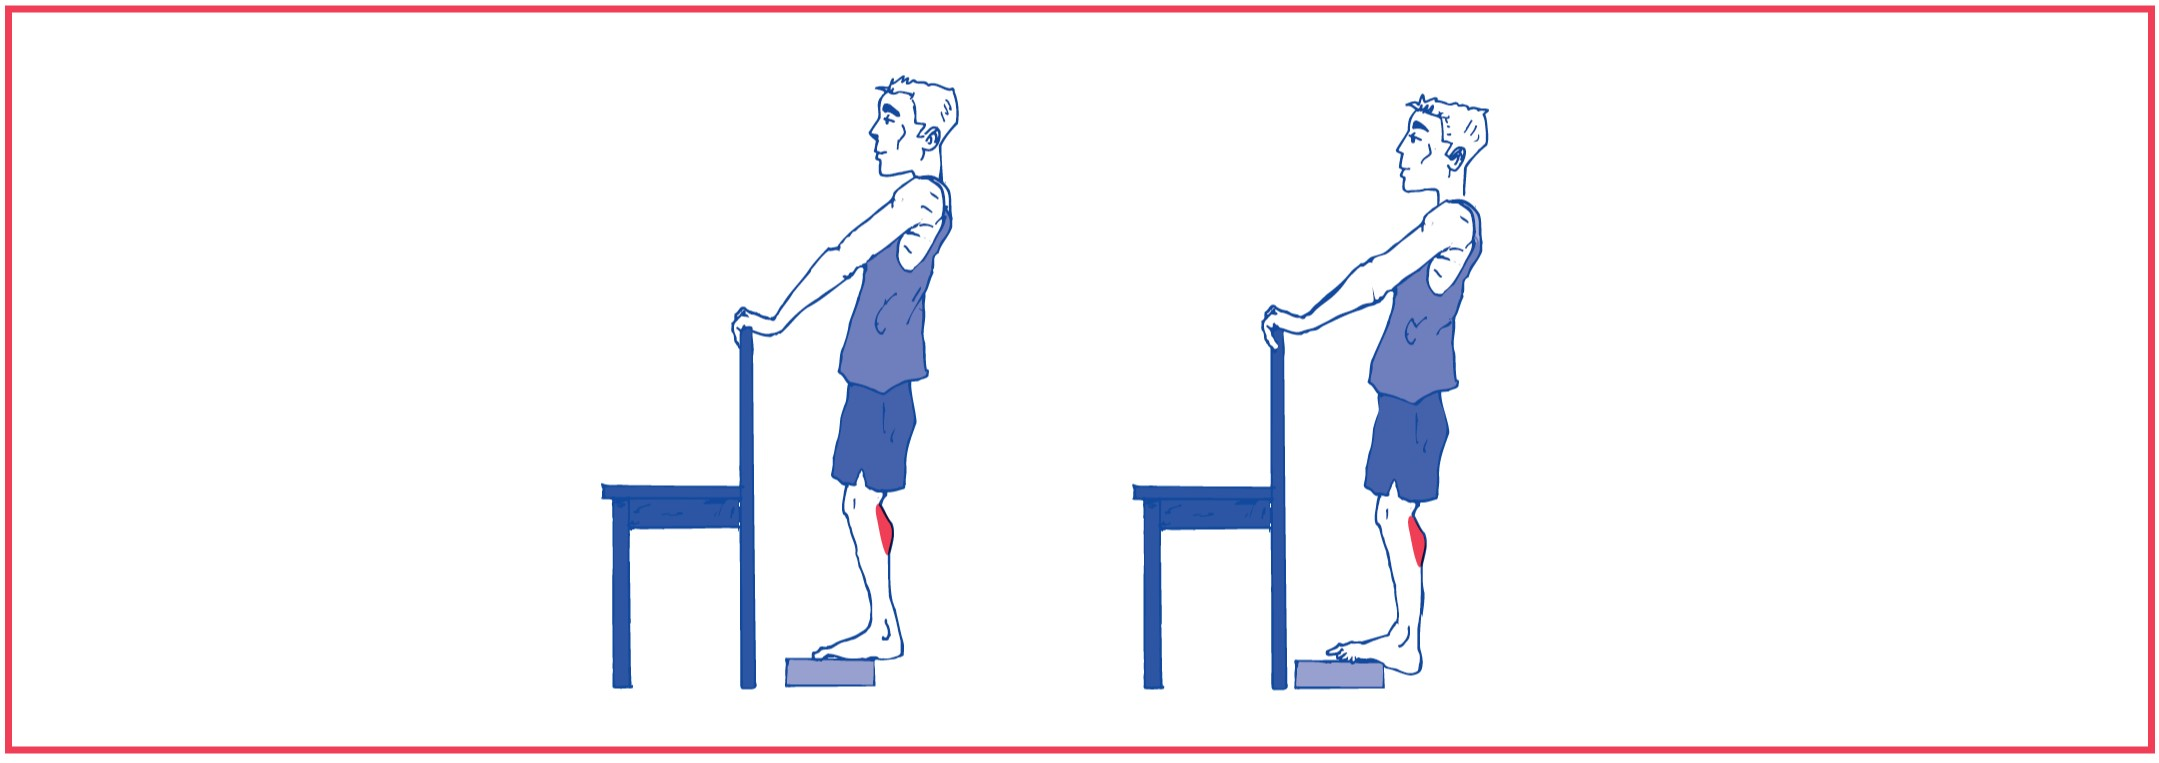 6. Stretching exercise for calf muscle